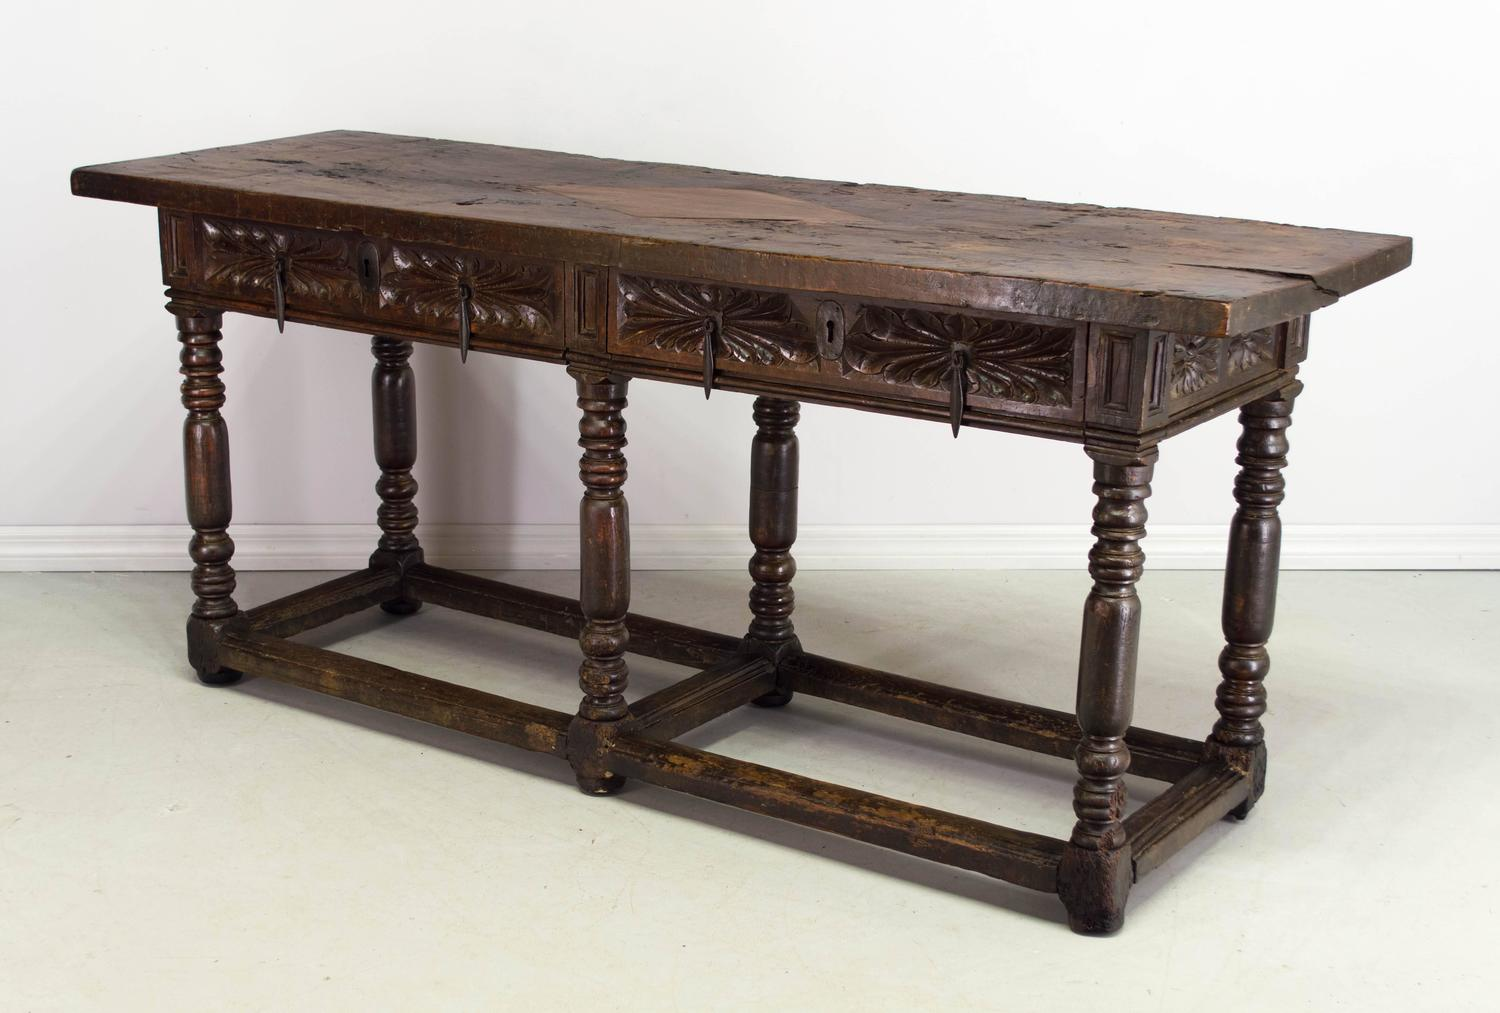 18th century spanish baroque console table at 1stdibs - Baroque console table ...